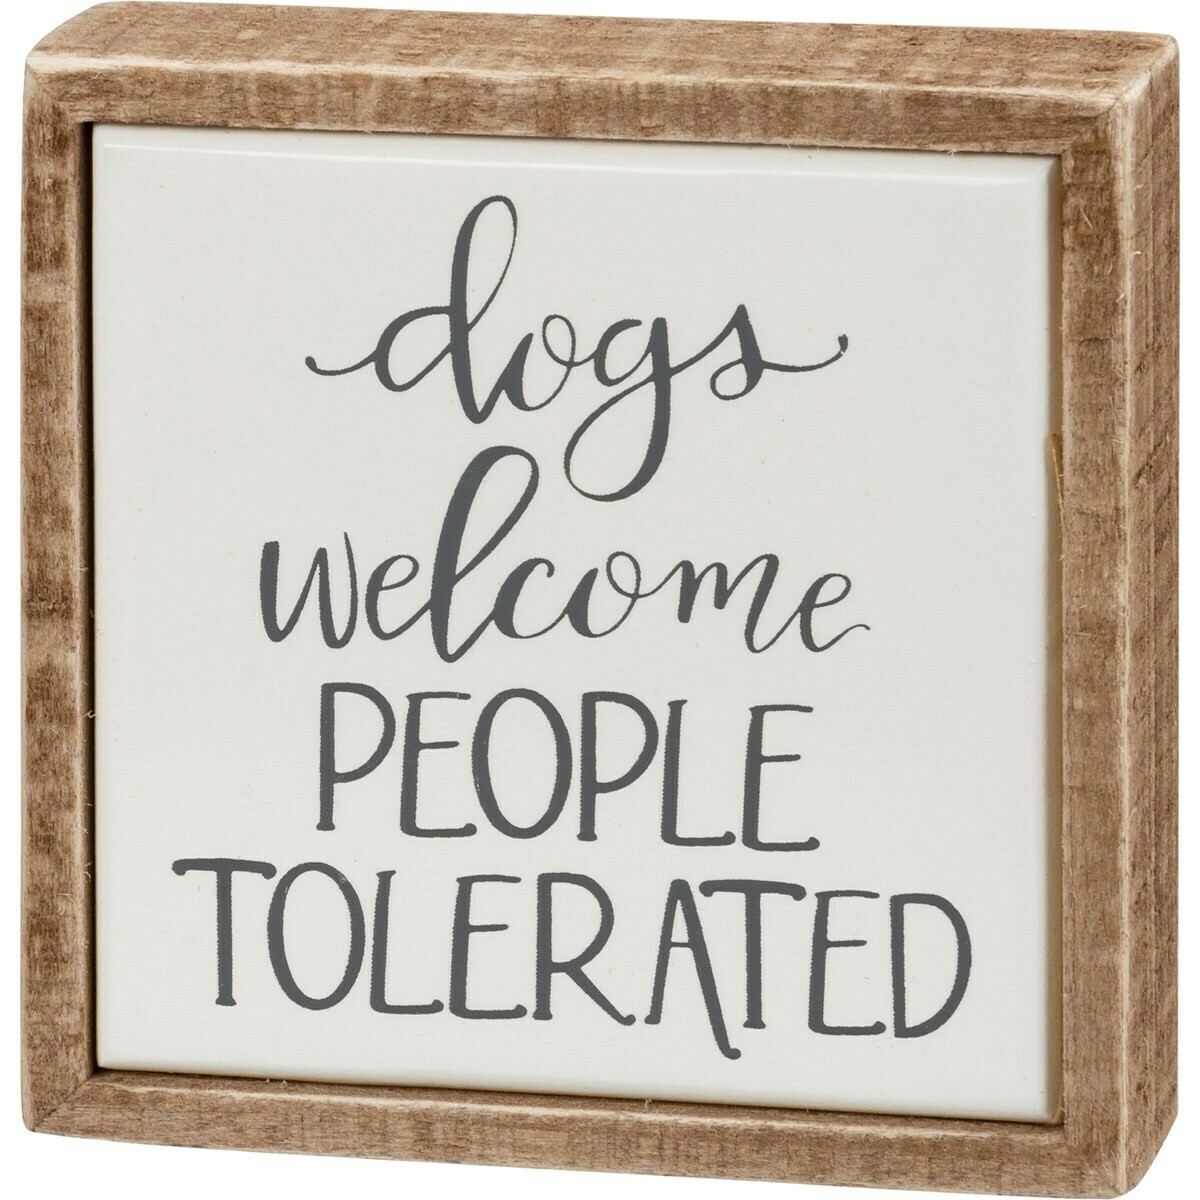 Dogs Welcome People Tolerated Mini Sign